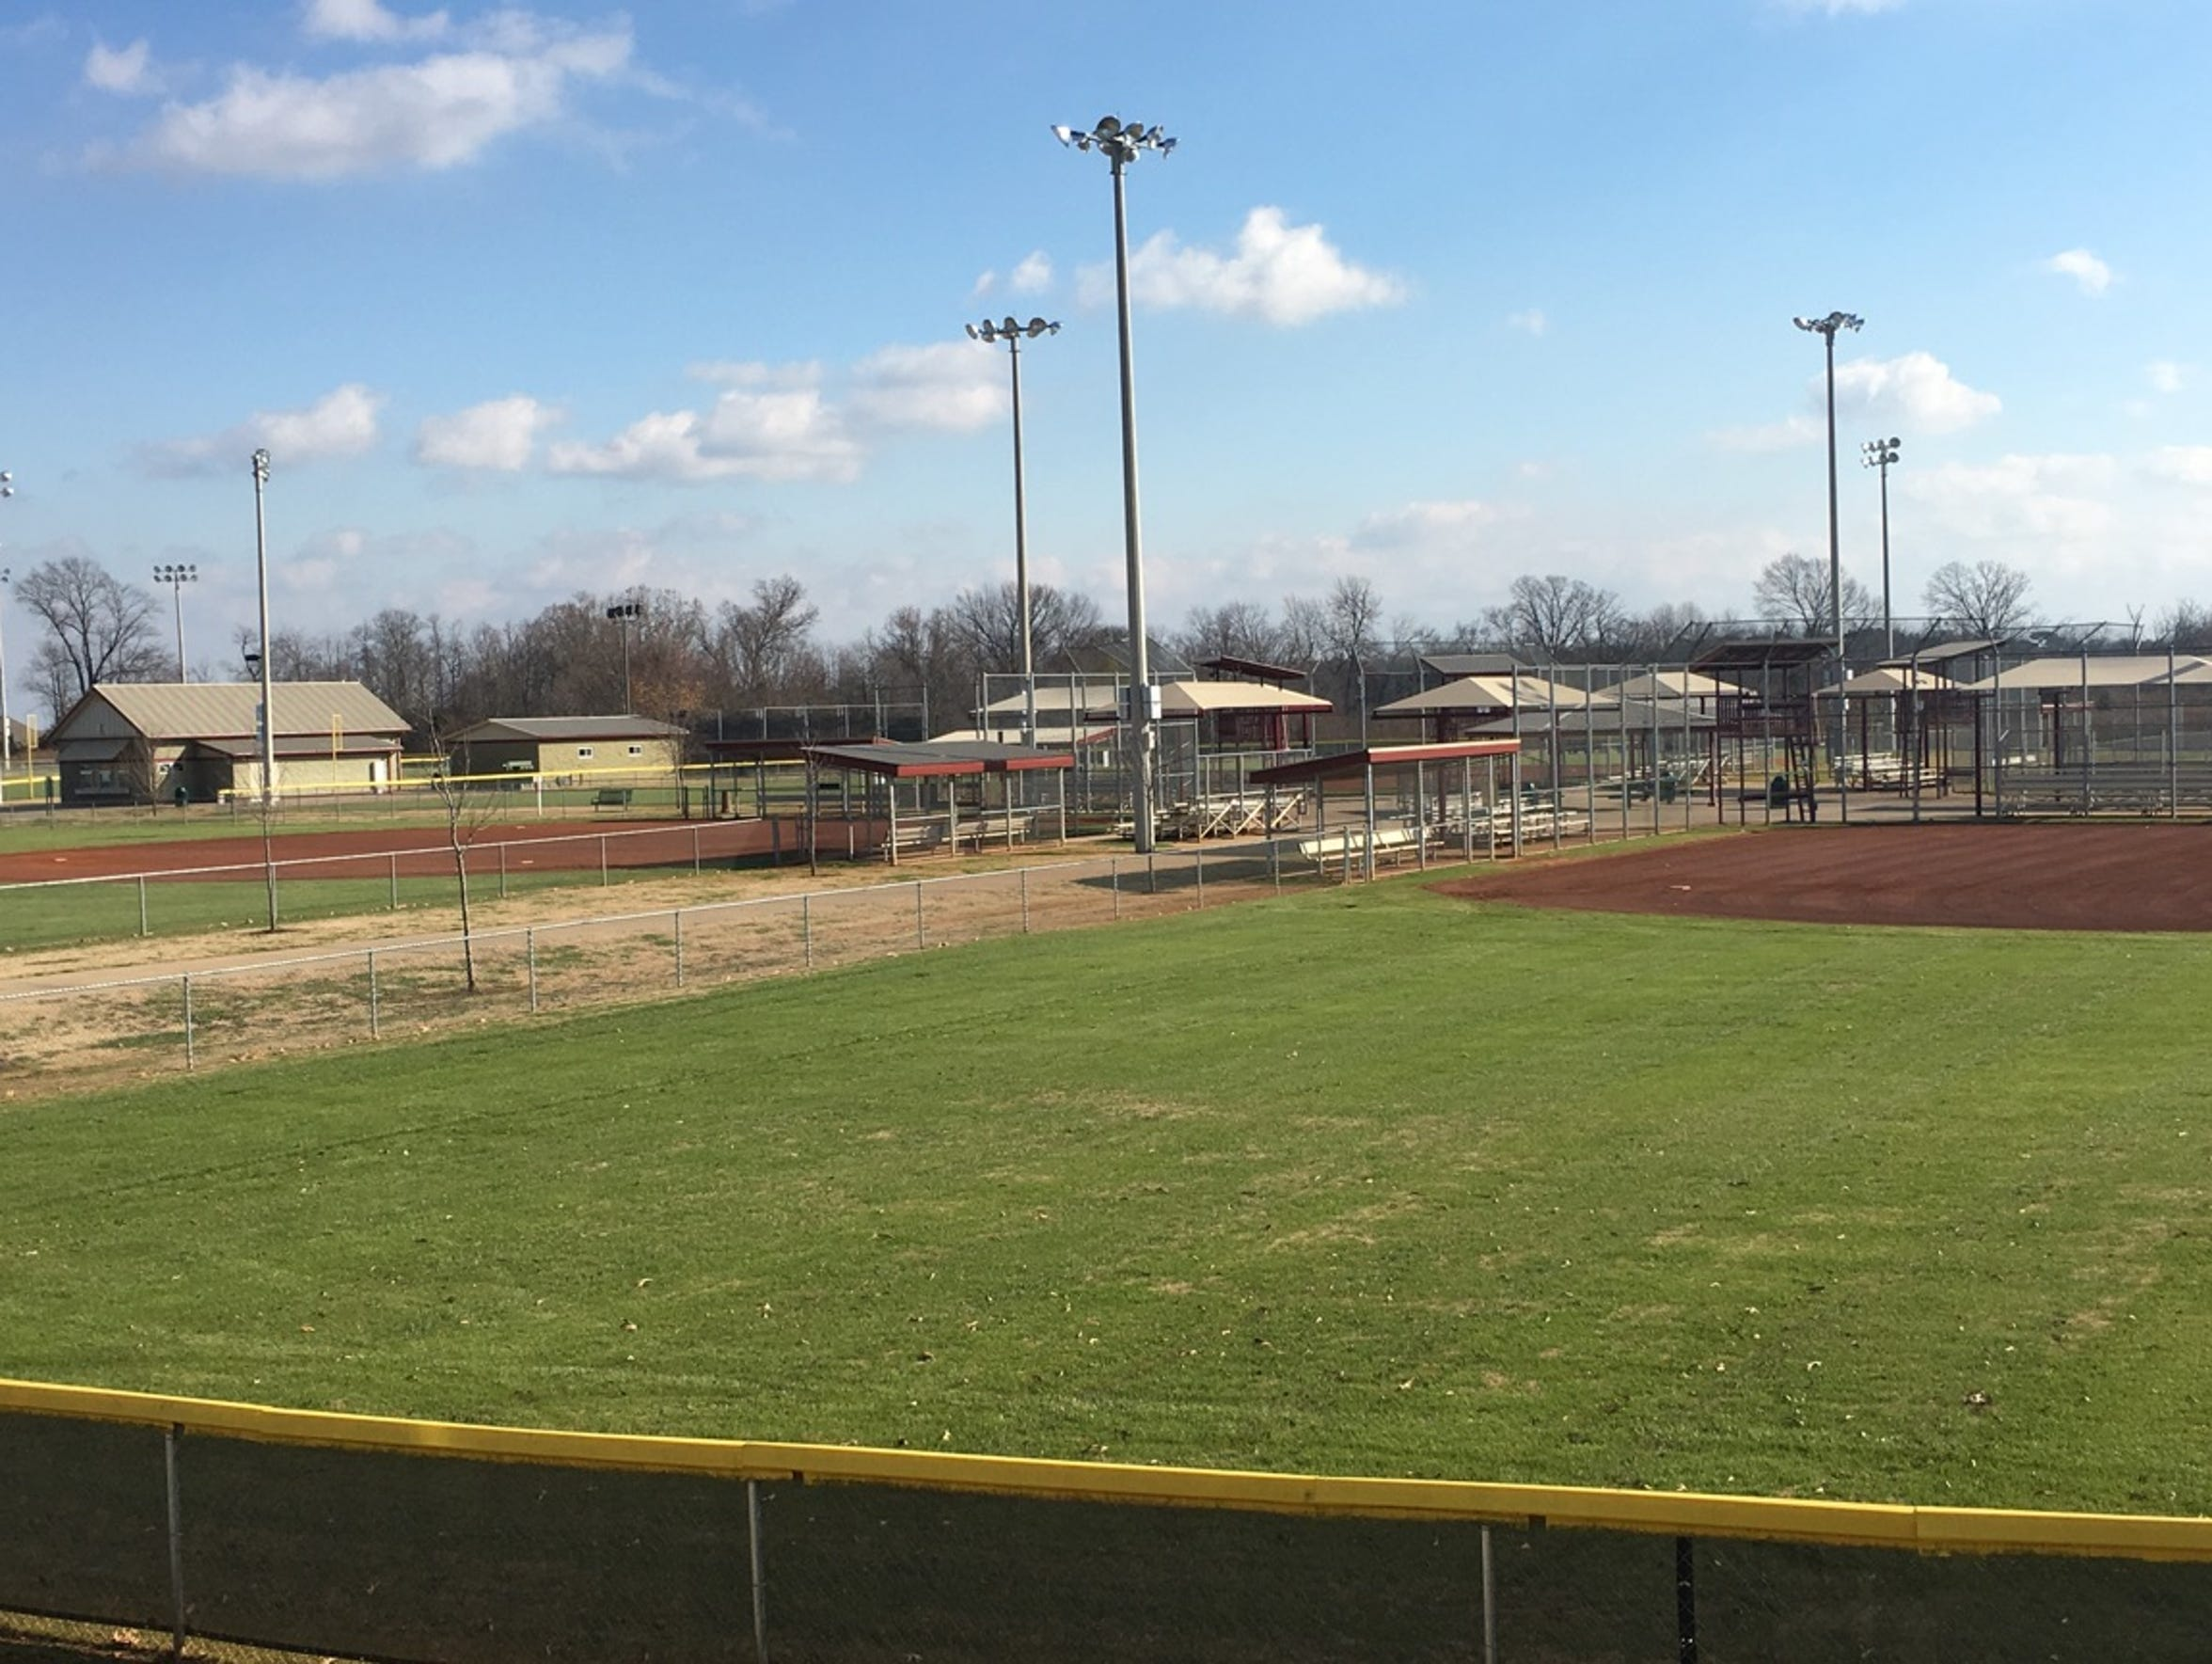 Ballfields at Civitan Park are attracting lucrative